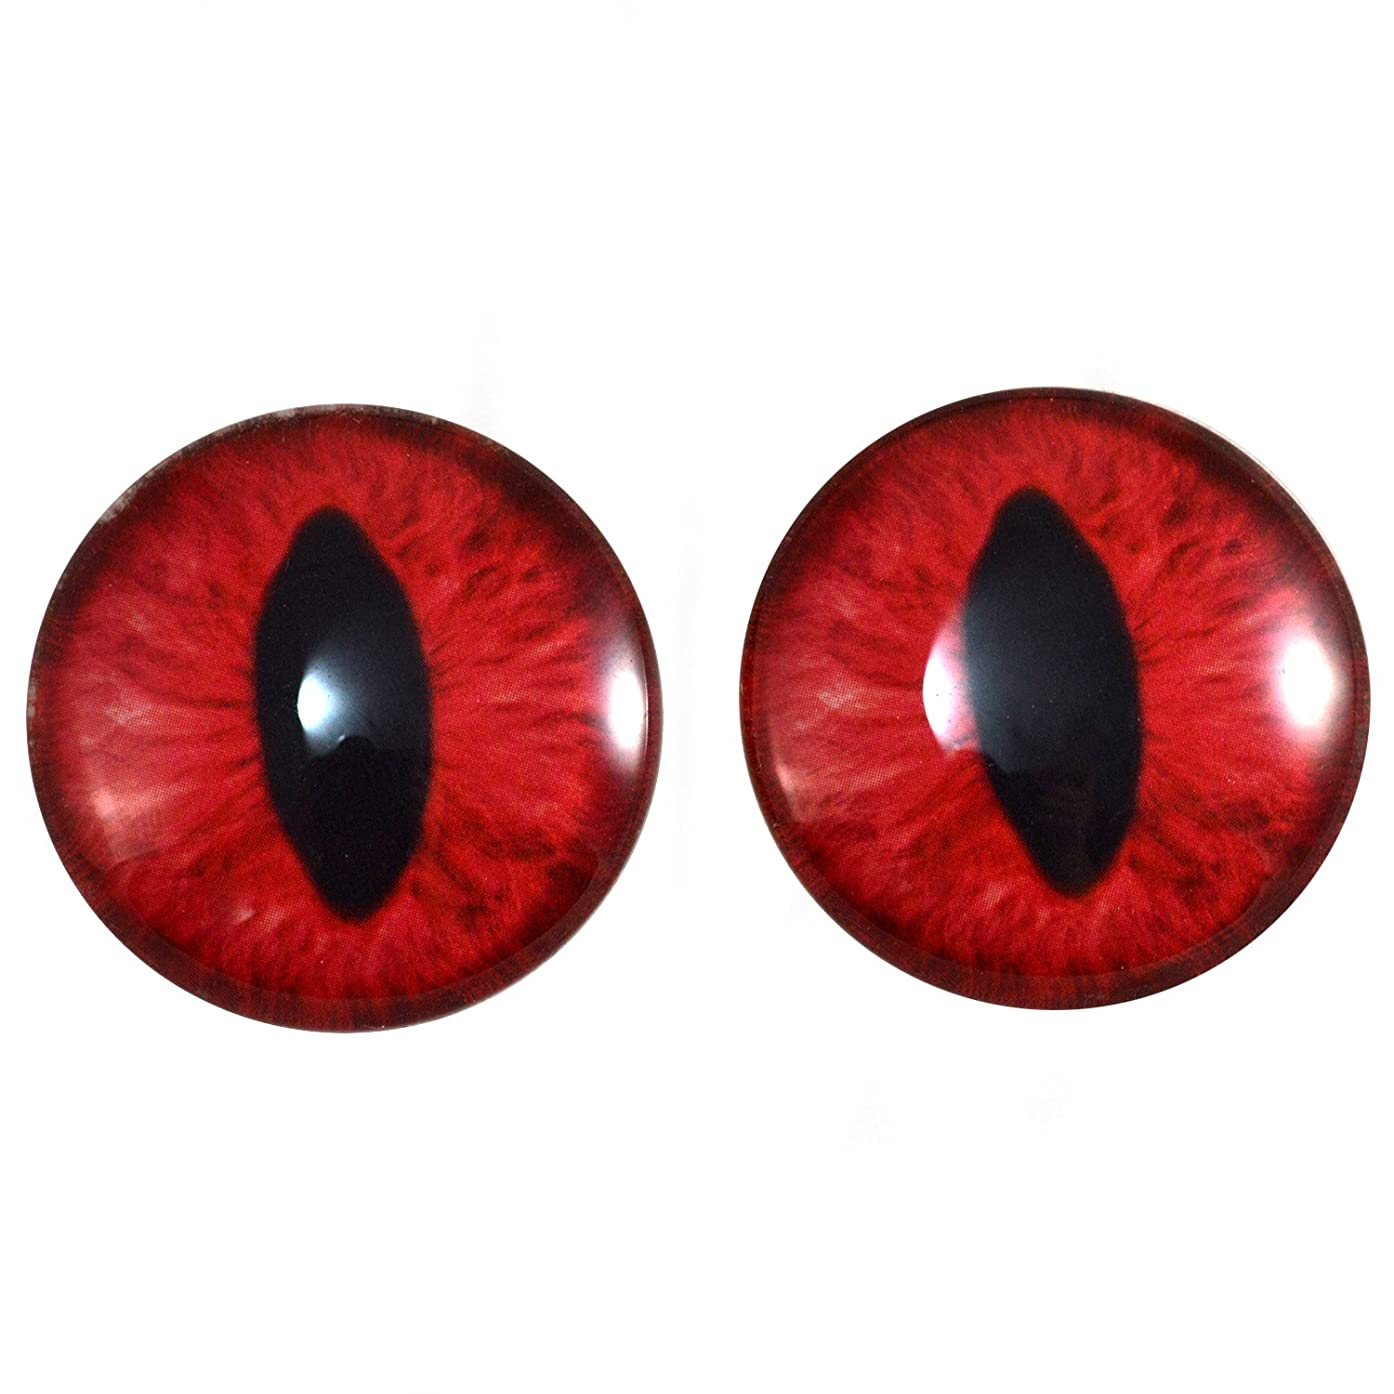 40mm Pair of Red Cat or Dragon Glass Eyes for Jewelry Making, Dolls, Sculptures, More